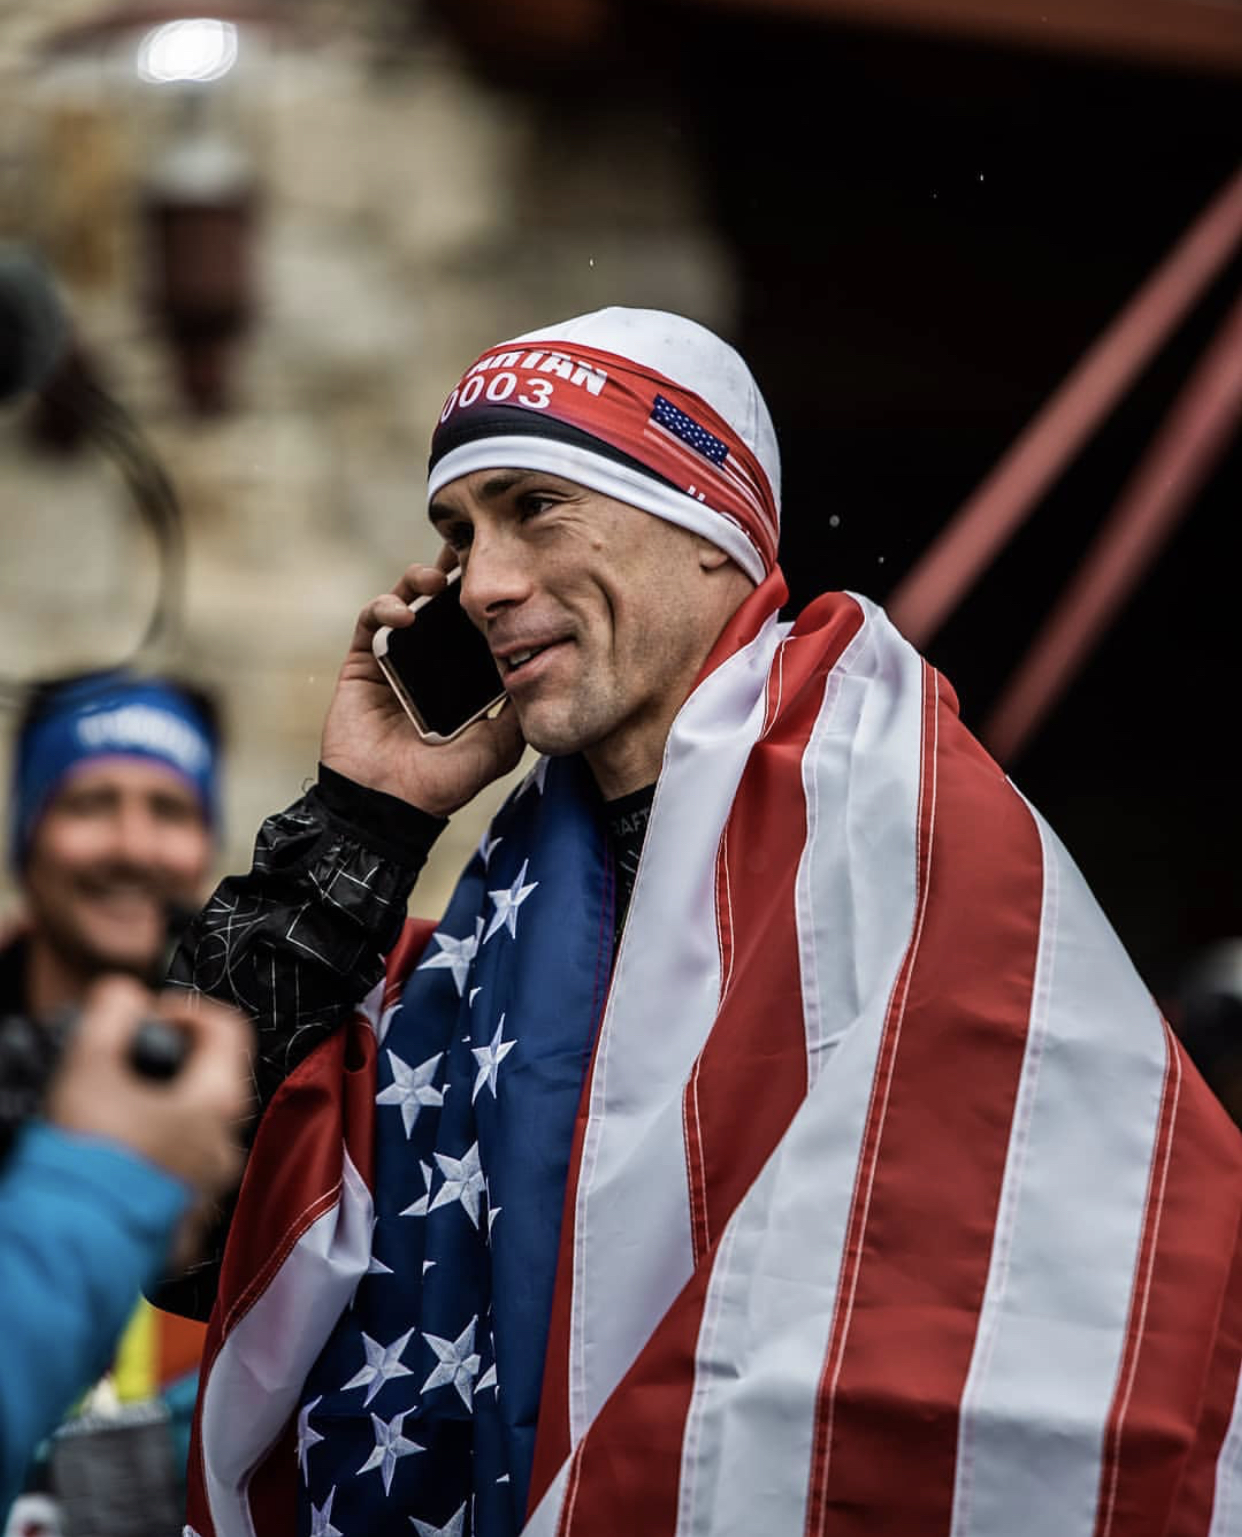 Episode 206: Spartan World Champ Robert Killian Talks Tahoe Race Controversy, His Mental Prep, Racing in Cold Weather, Iceland and More